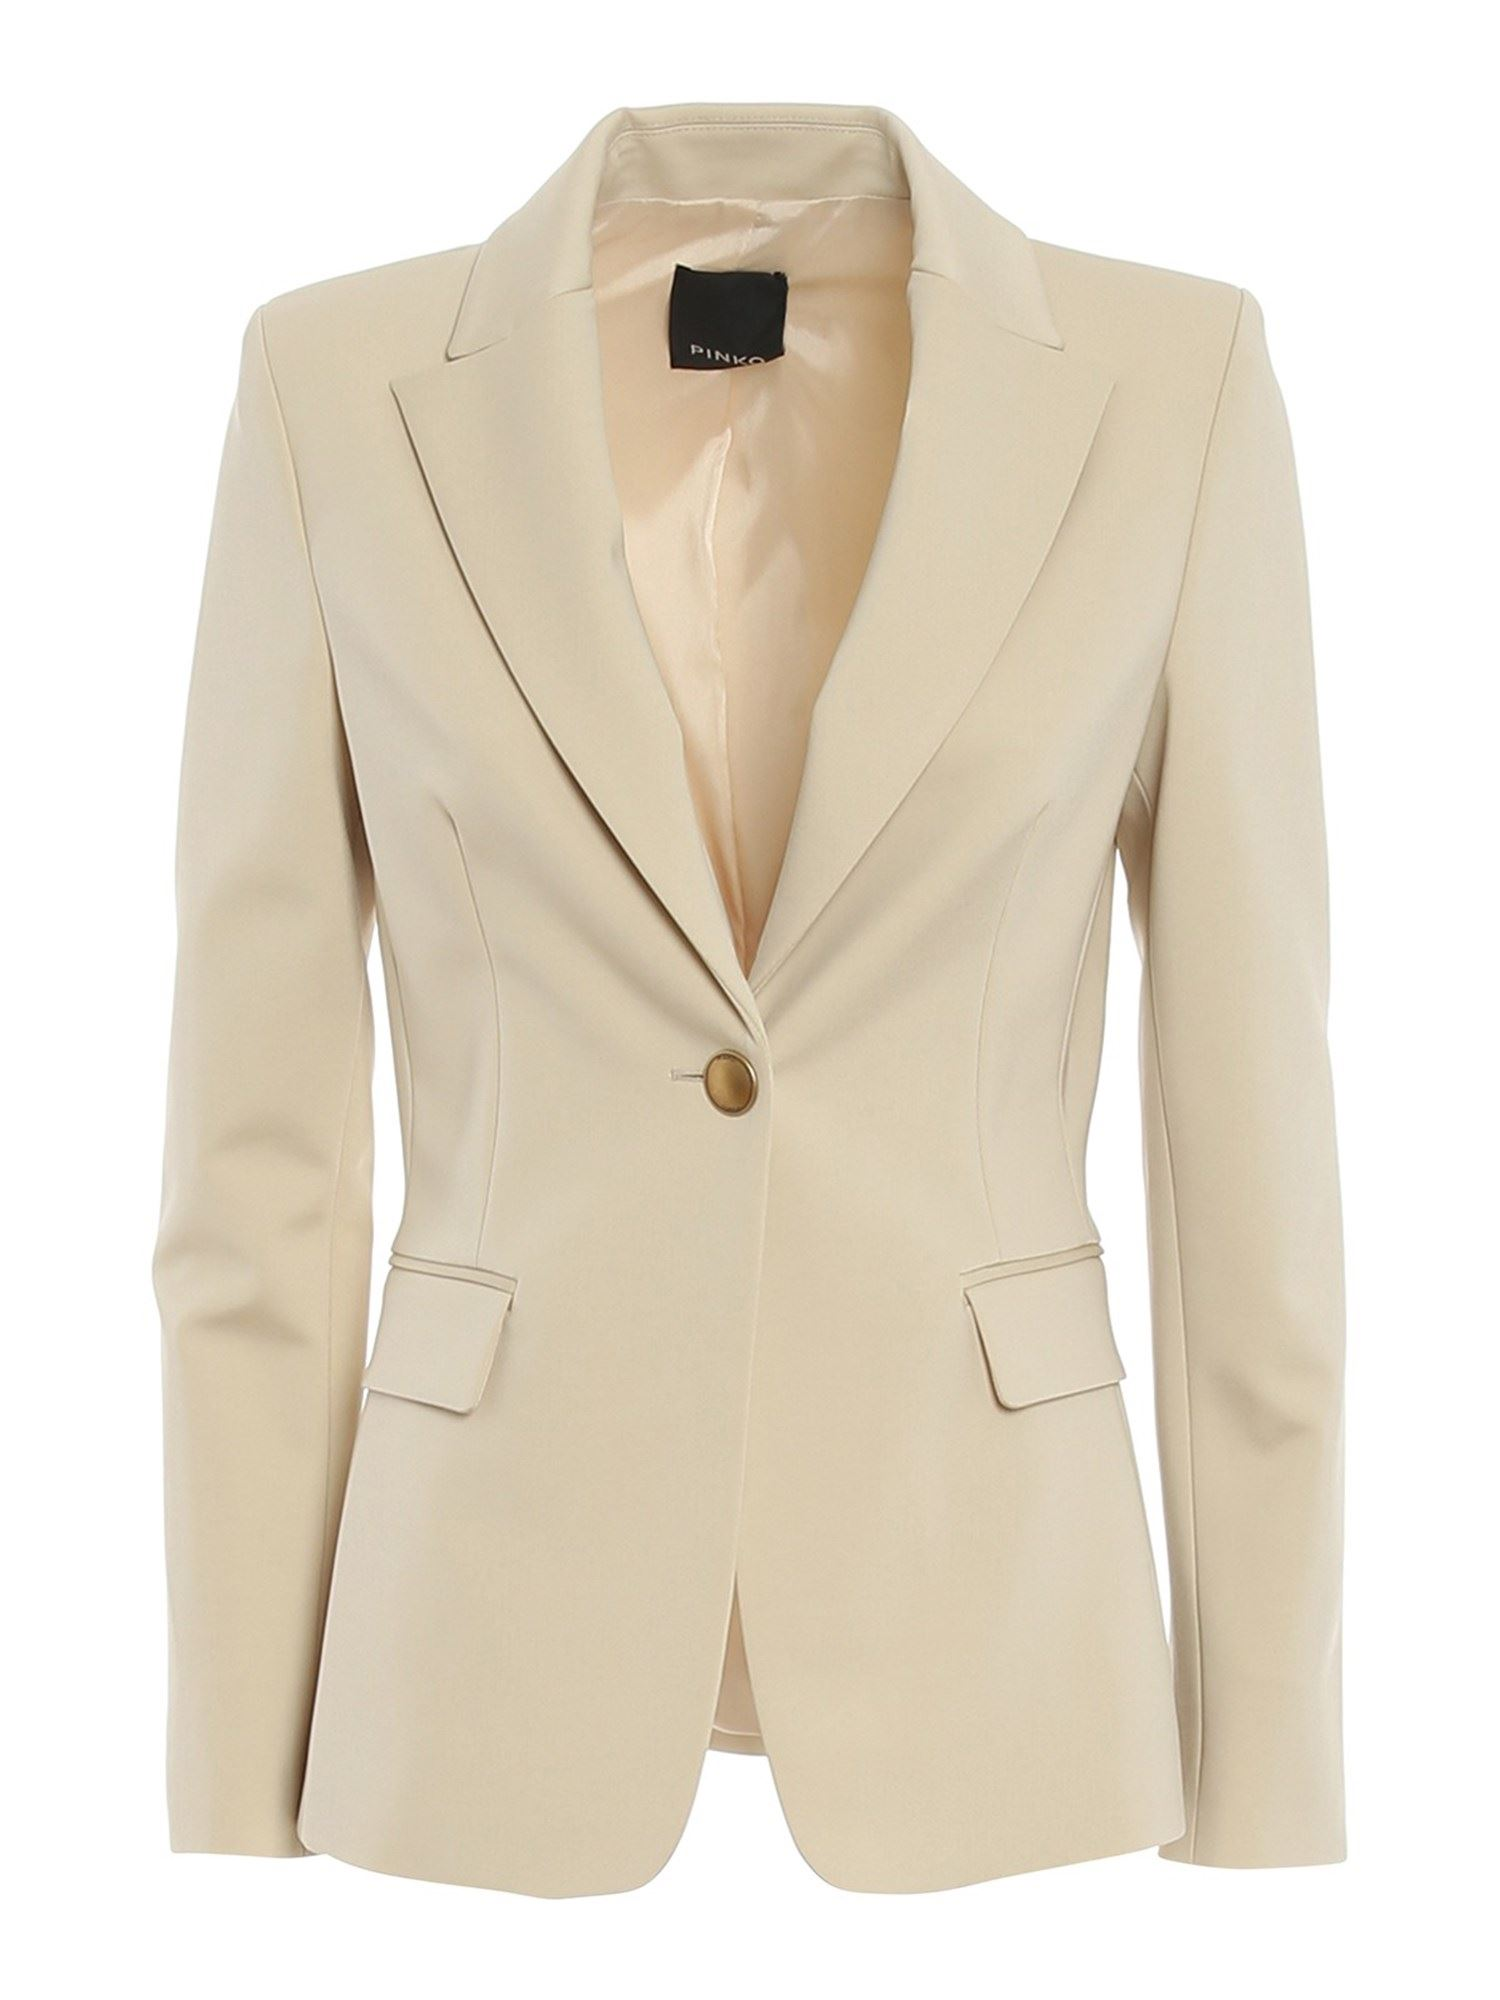 Pinko PINKO SIGMA 2 BLAZER IN SABBIA MOVENTE COLOR